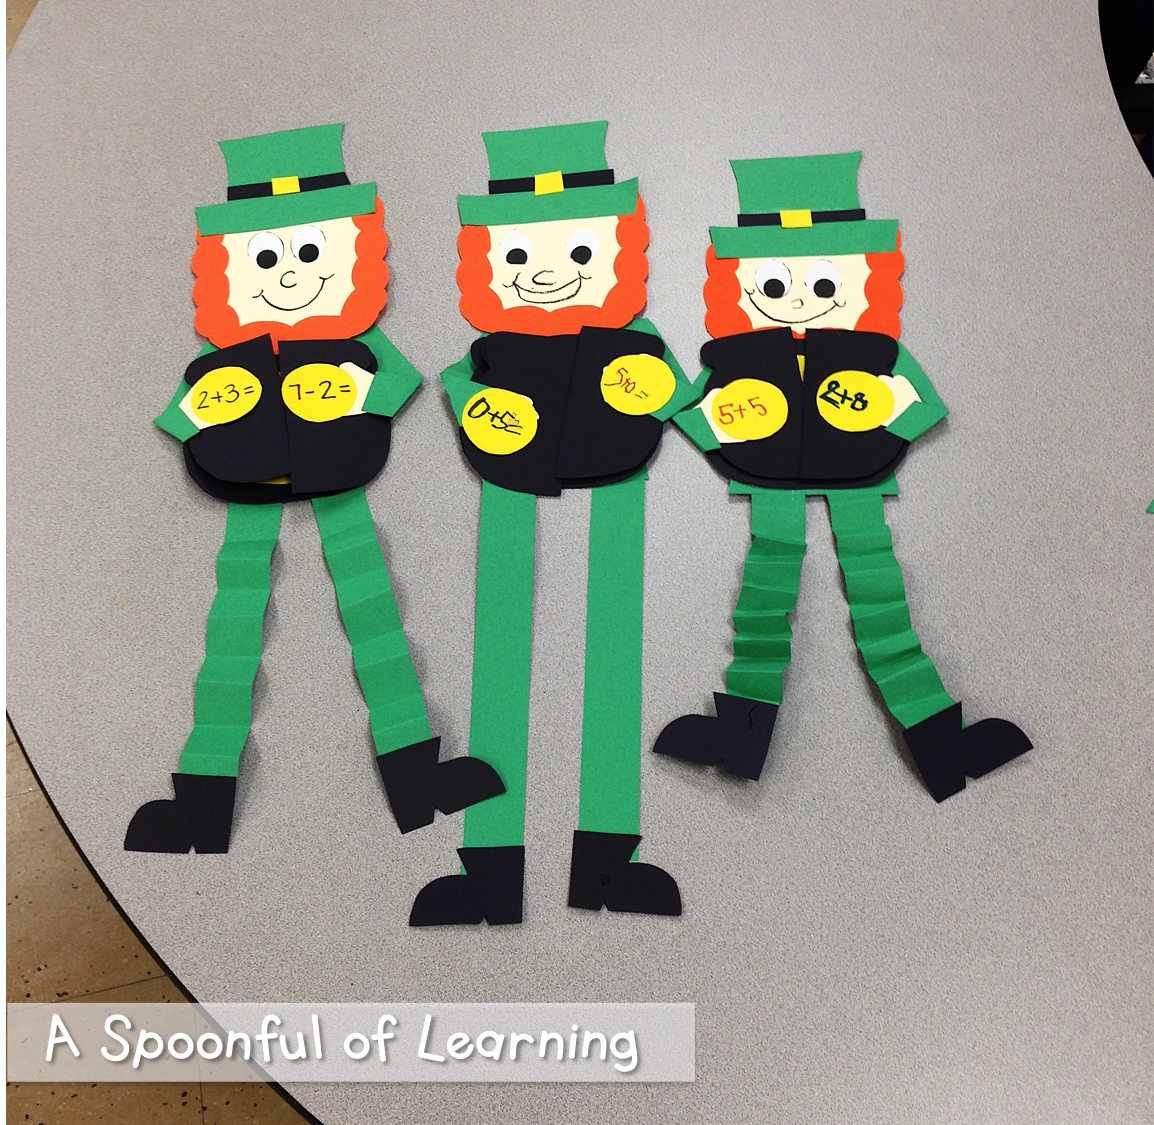 St. Patrick's Day Fun in the classroom!